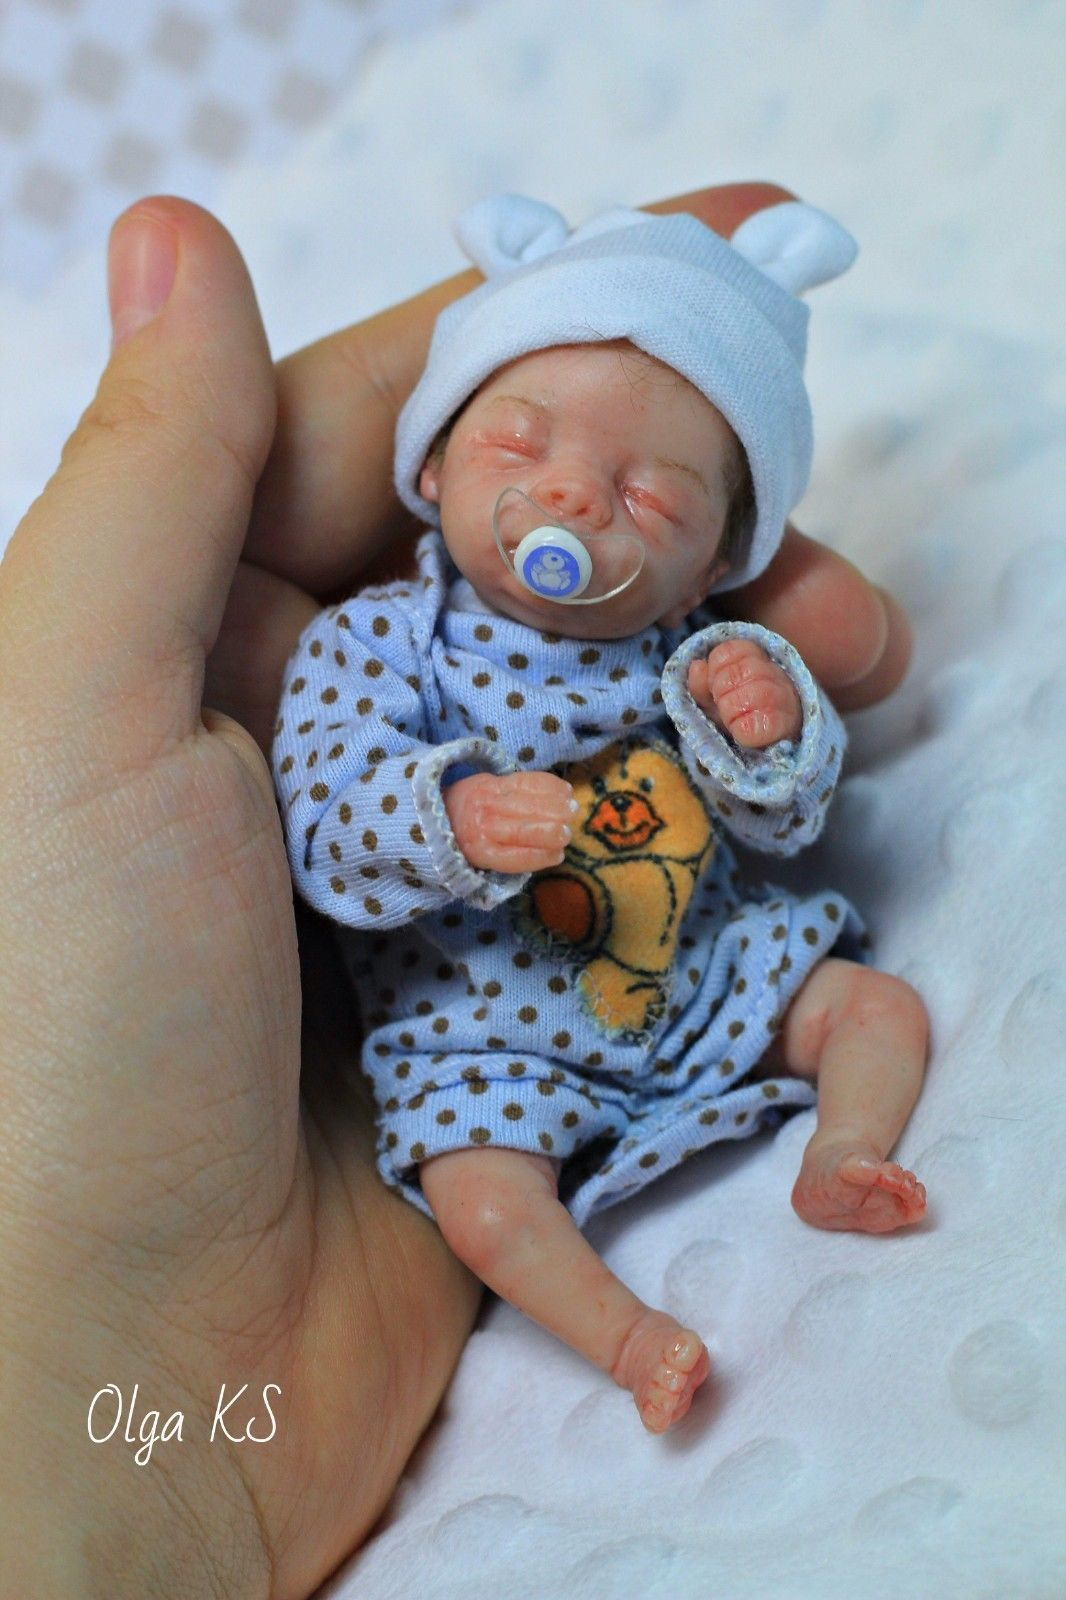 Ooak Hand Sculpted Baby Girl Art Doll Mini By Gina Holland Ebay Silicone Baby Dolls Baby Dolls For Sale Newborn Baby Dolls